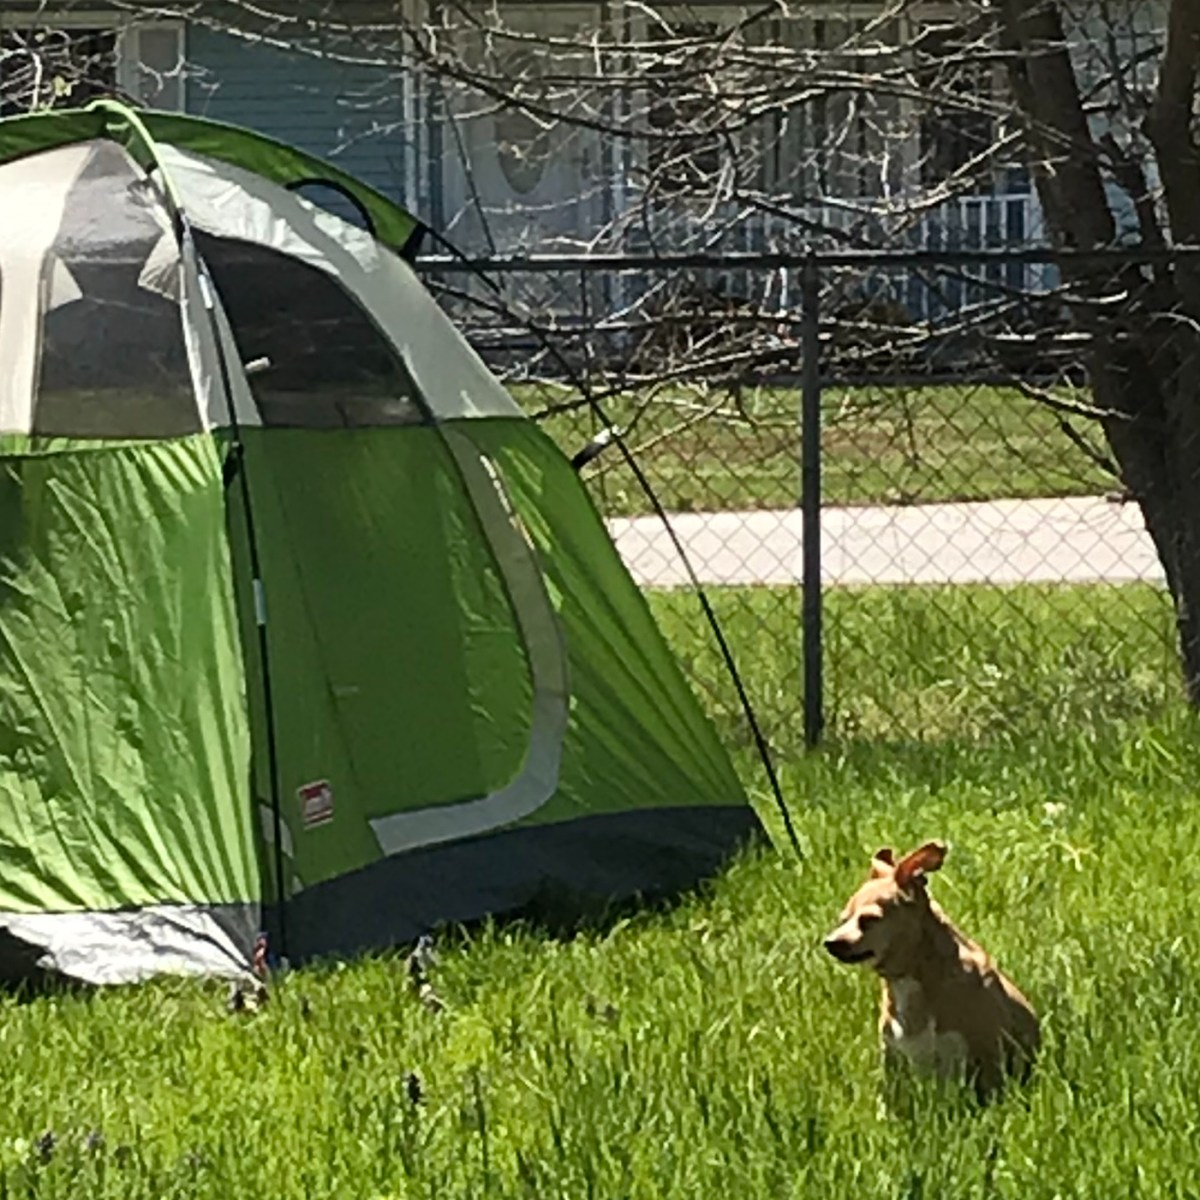 Dog stands next to tent in backyard